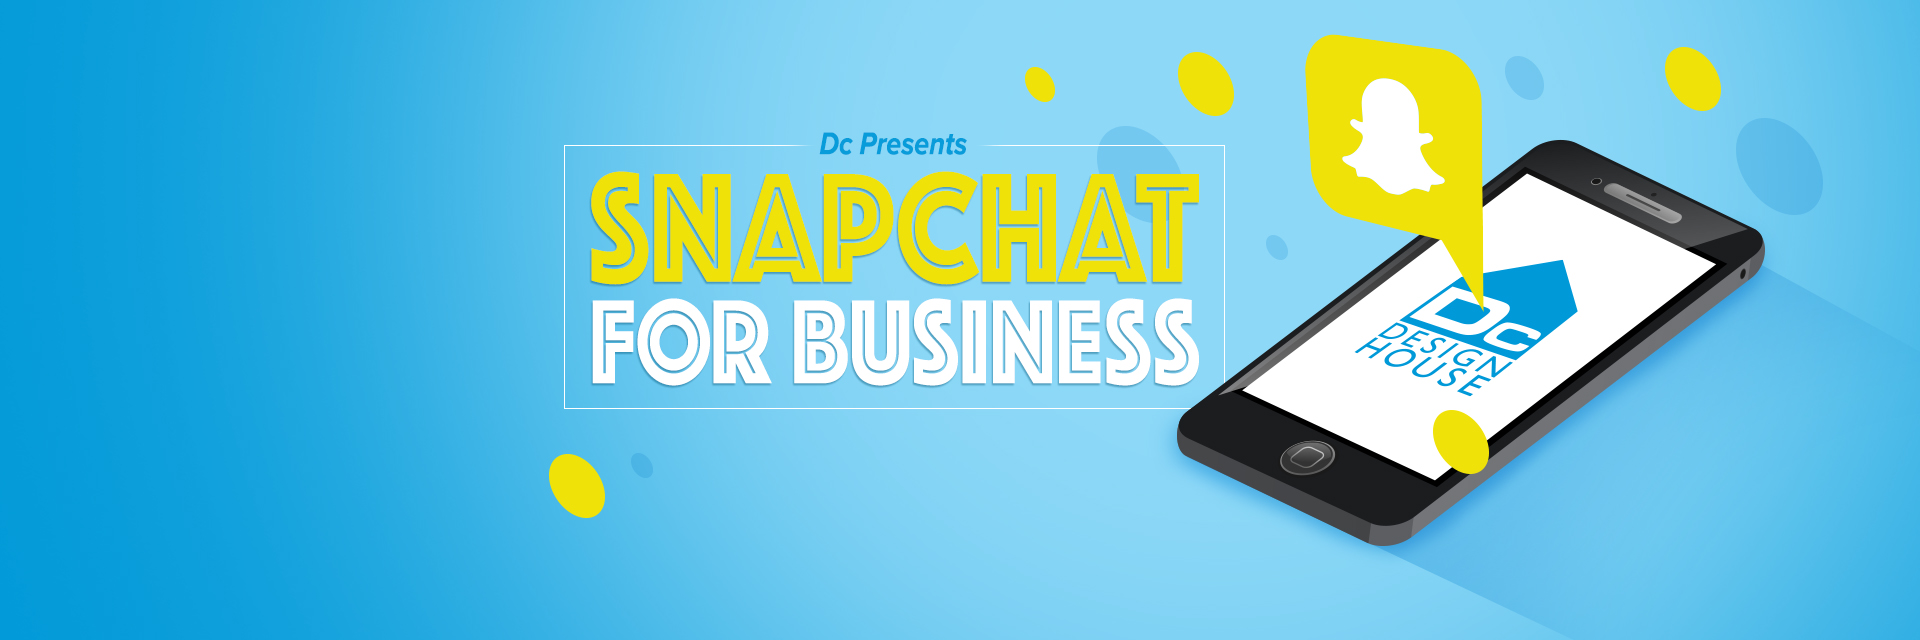 Dc Presents: Snapchat for Business